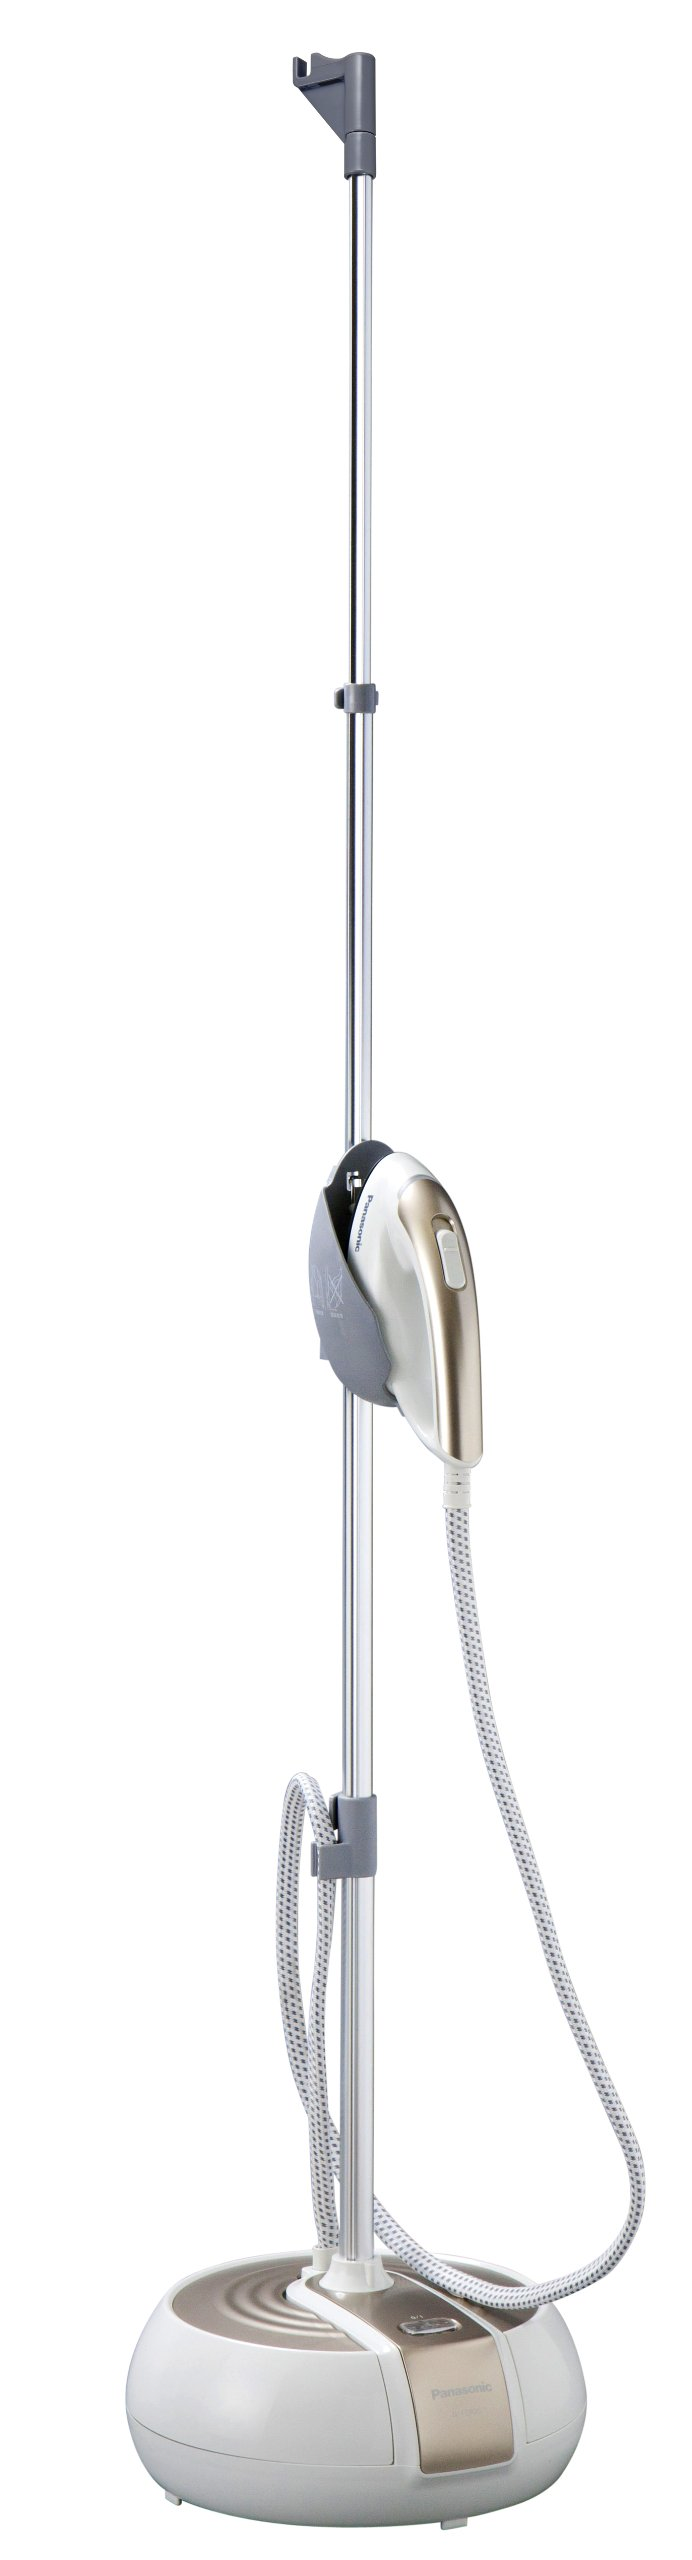 Panasonic NI-FS900 2-in-1 Garment Steamer by Panasonic